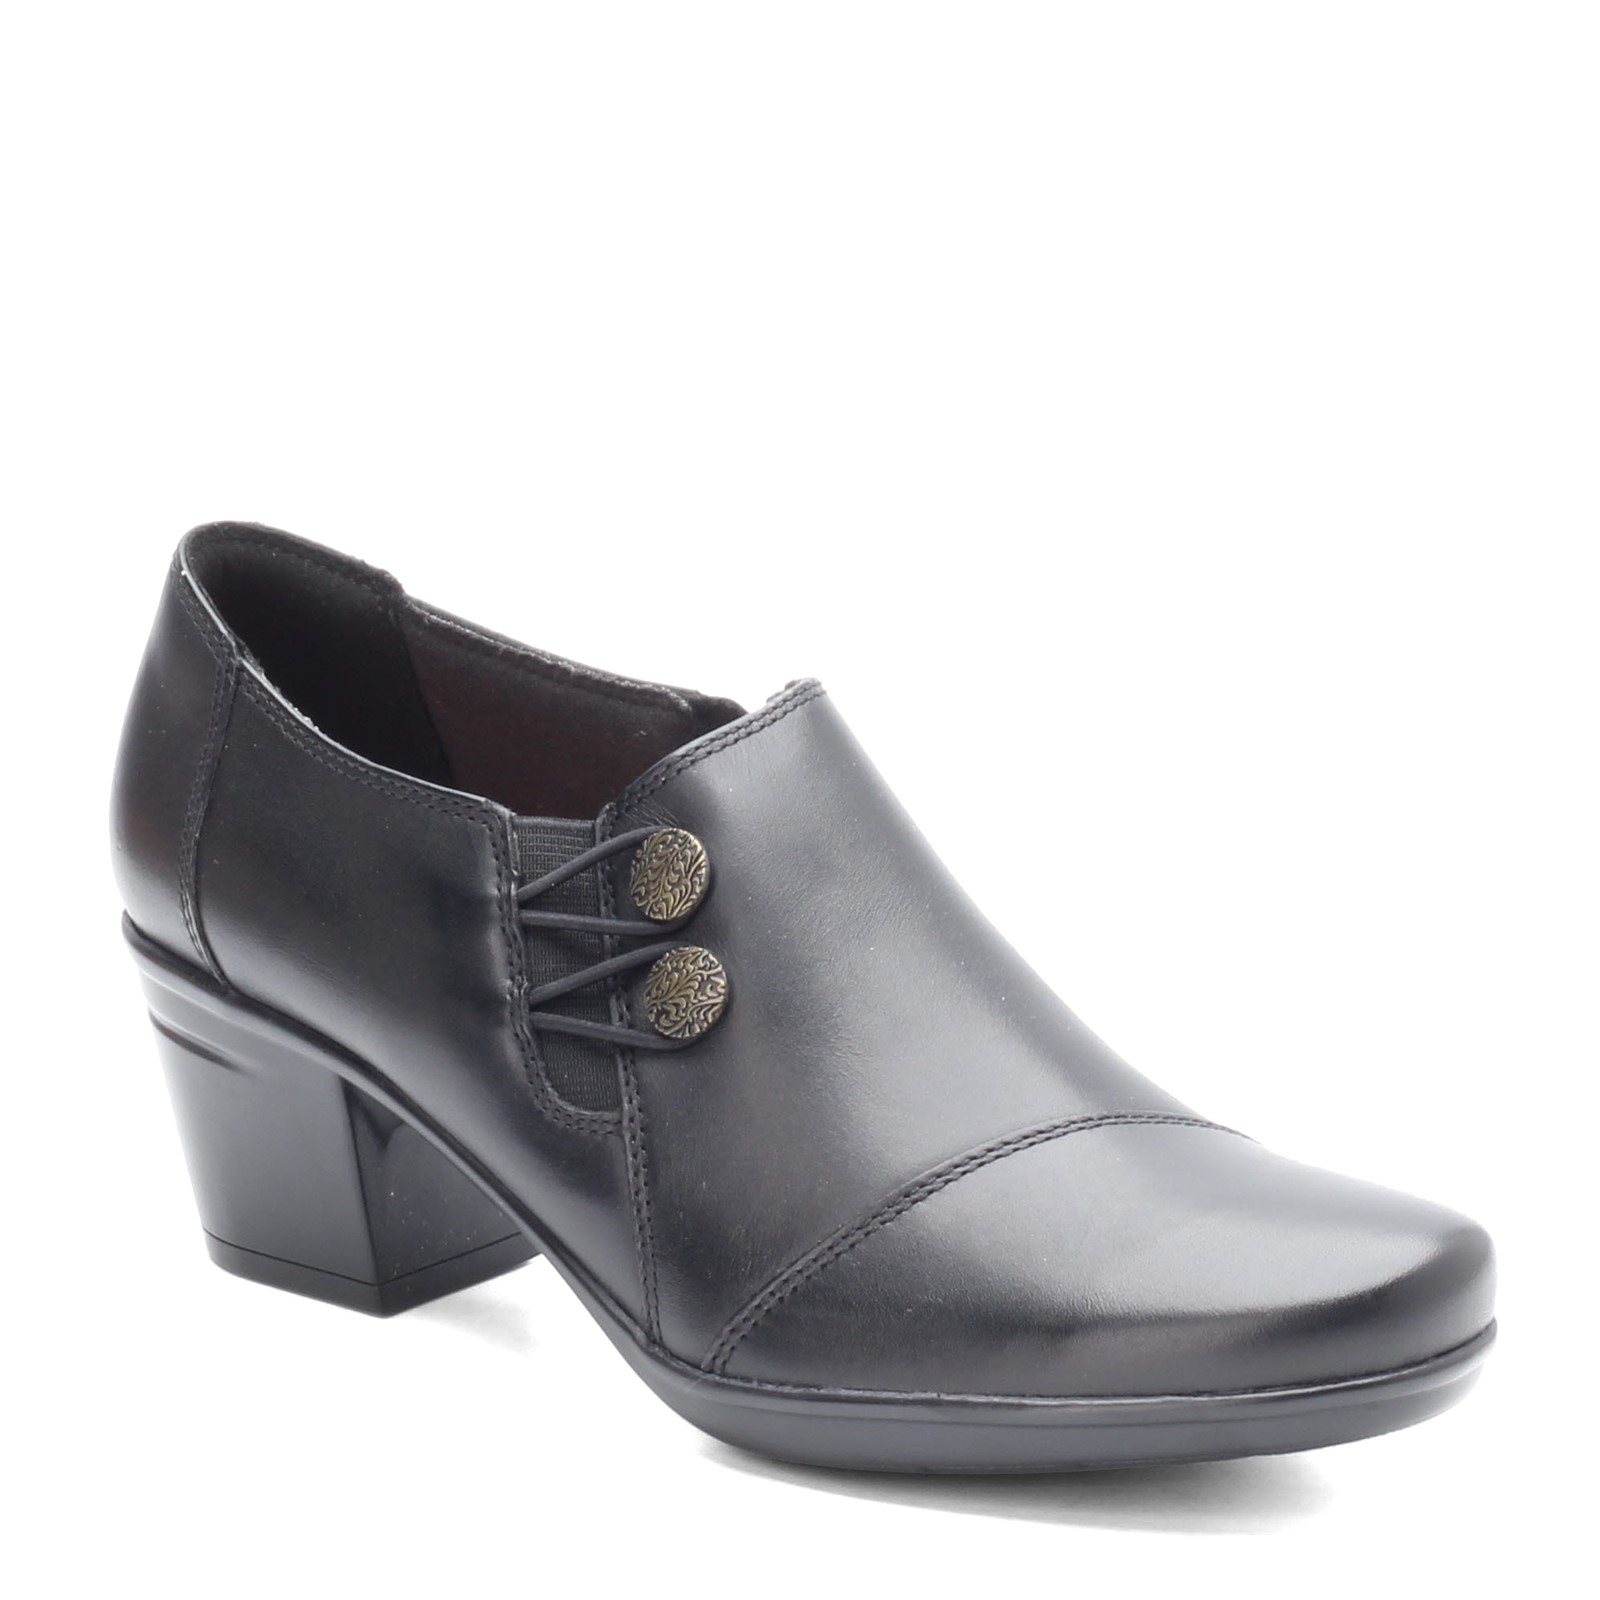 Women's Clarks, Emslie Warren Mid Heel Shooties